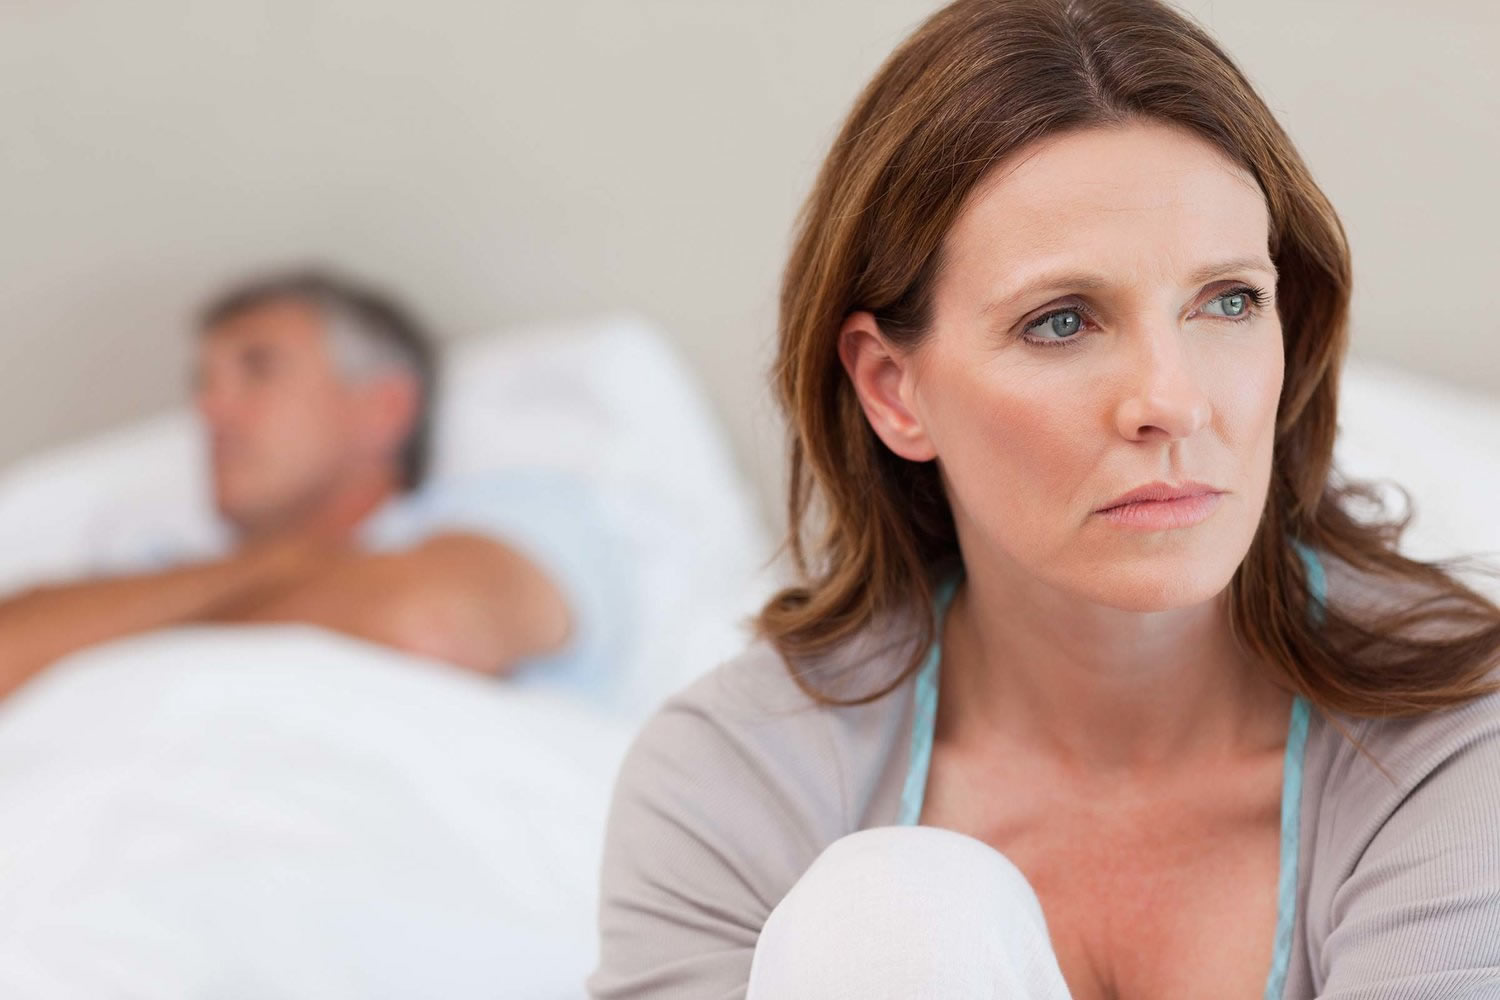 Female psychosexual dysfunction